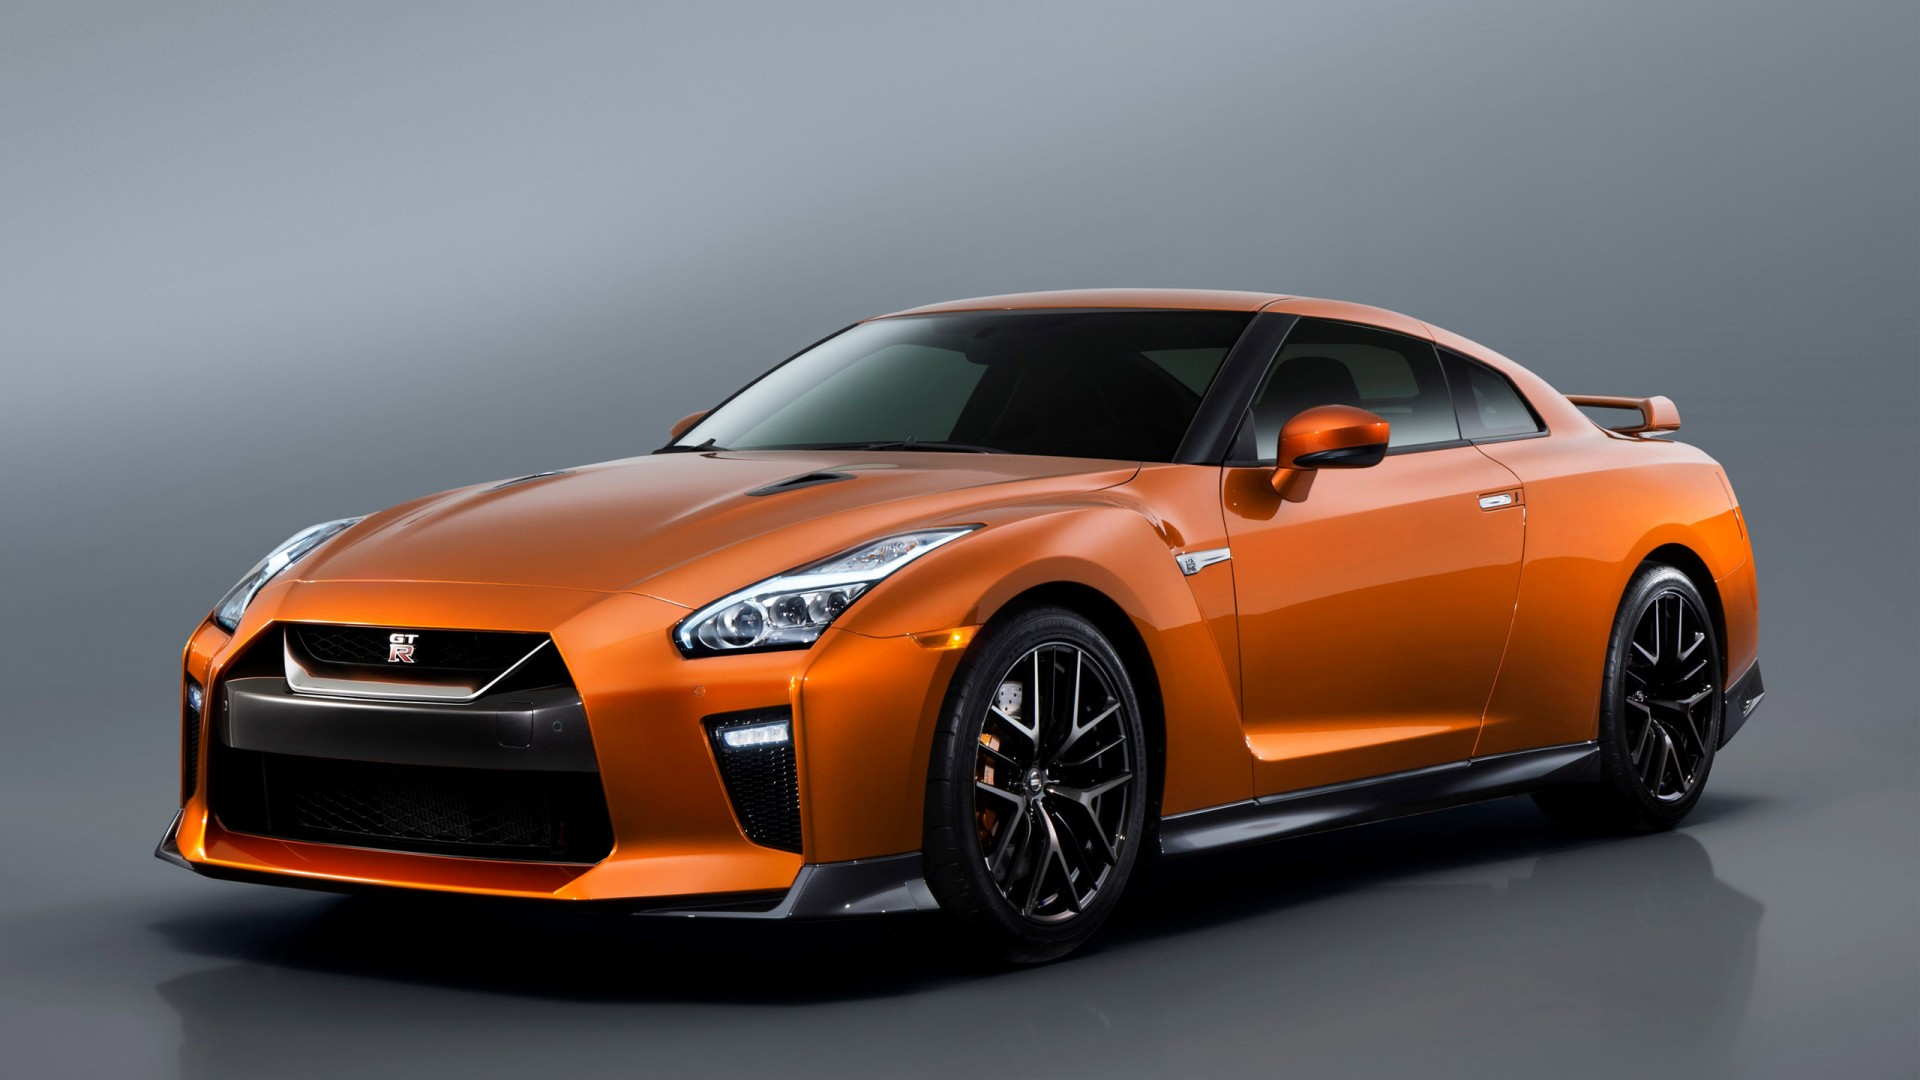 2017 Nissan GTR Wallpaper | HD Car Wallpapers | ID #6346